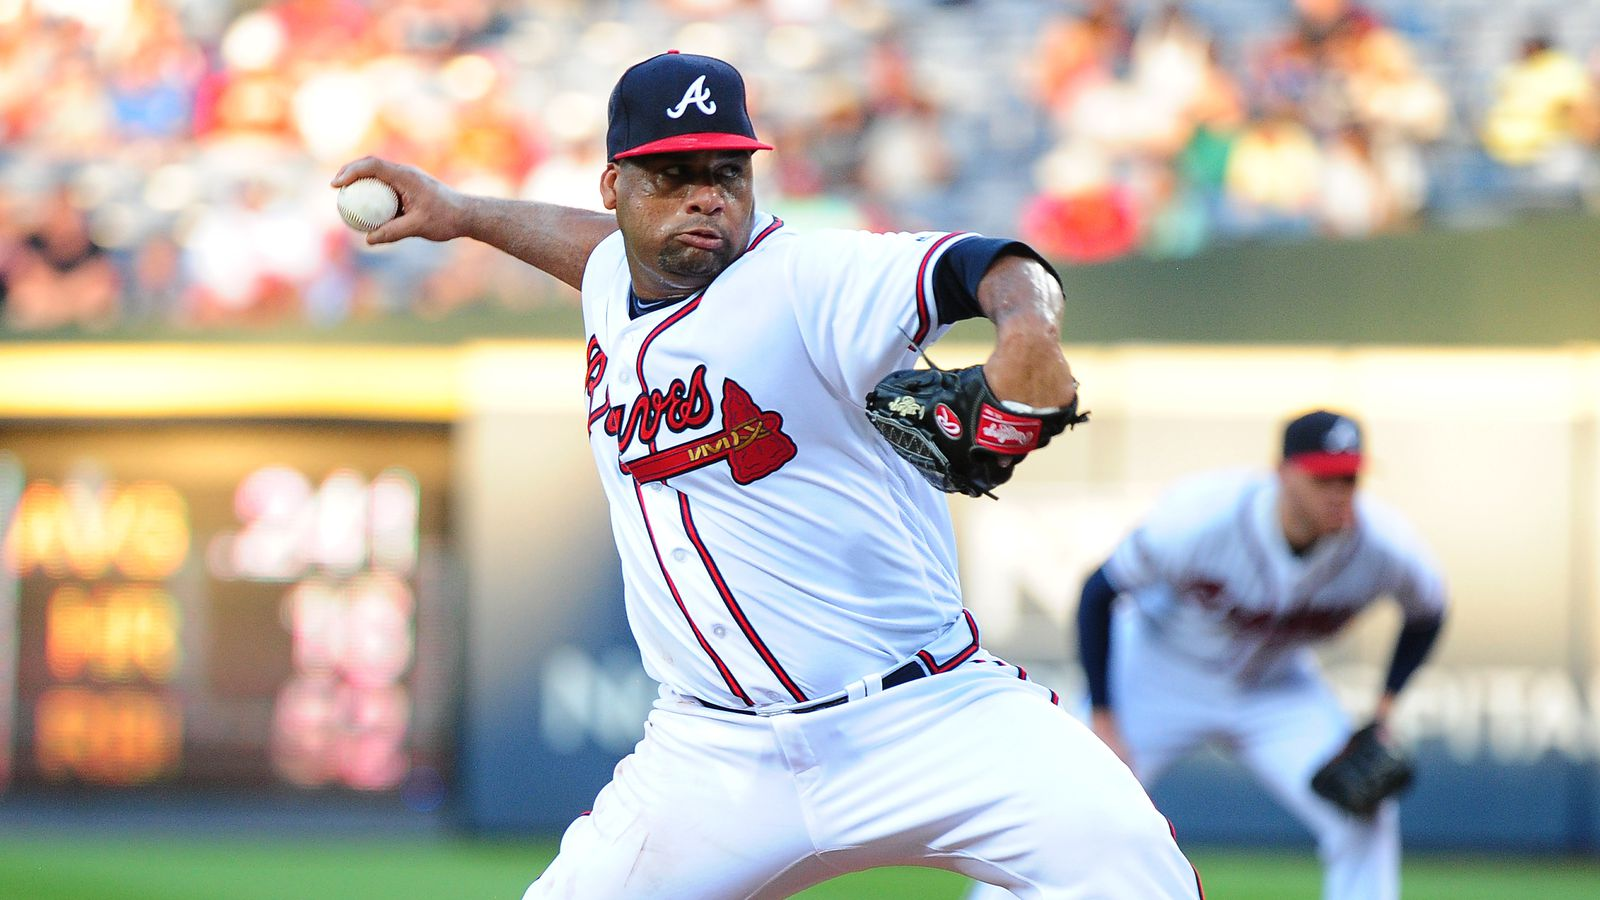 Braves vs Phillies preview: Atlanta hits the road for July 4 matchup in Philadelphia - Talking Chop